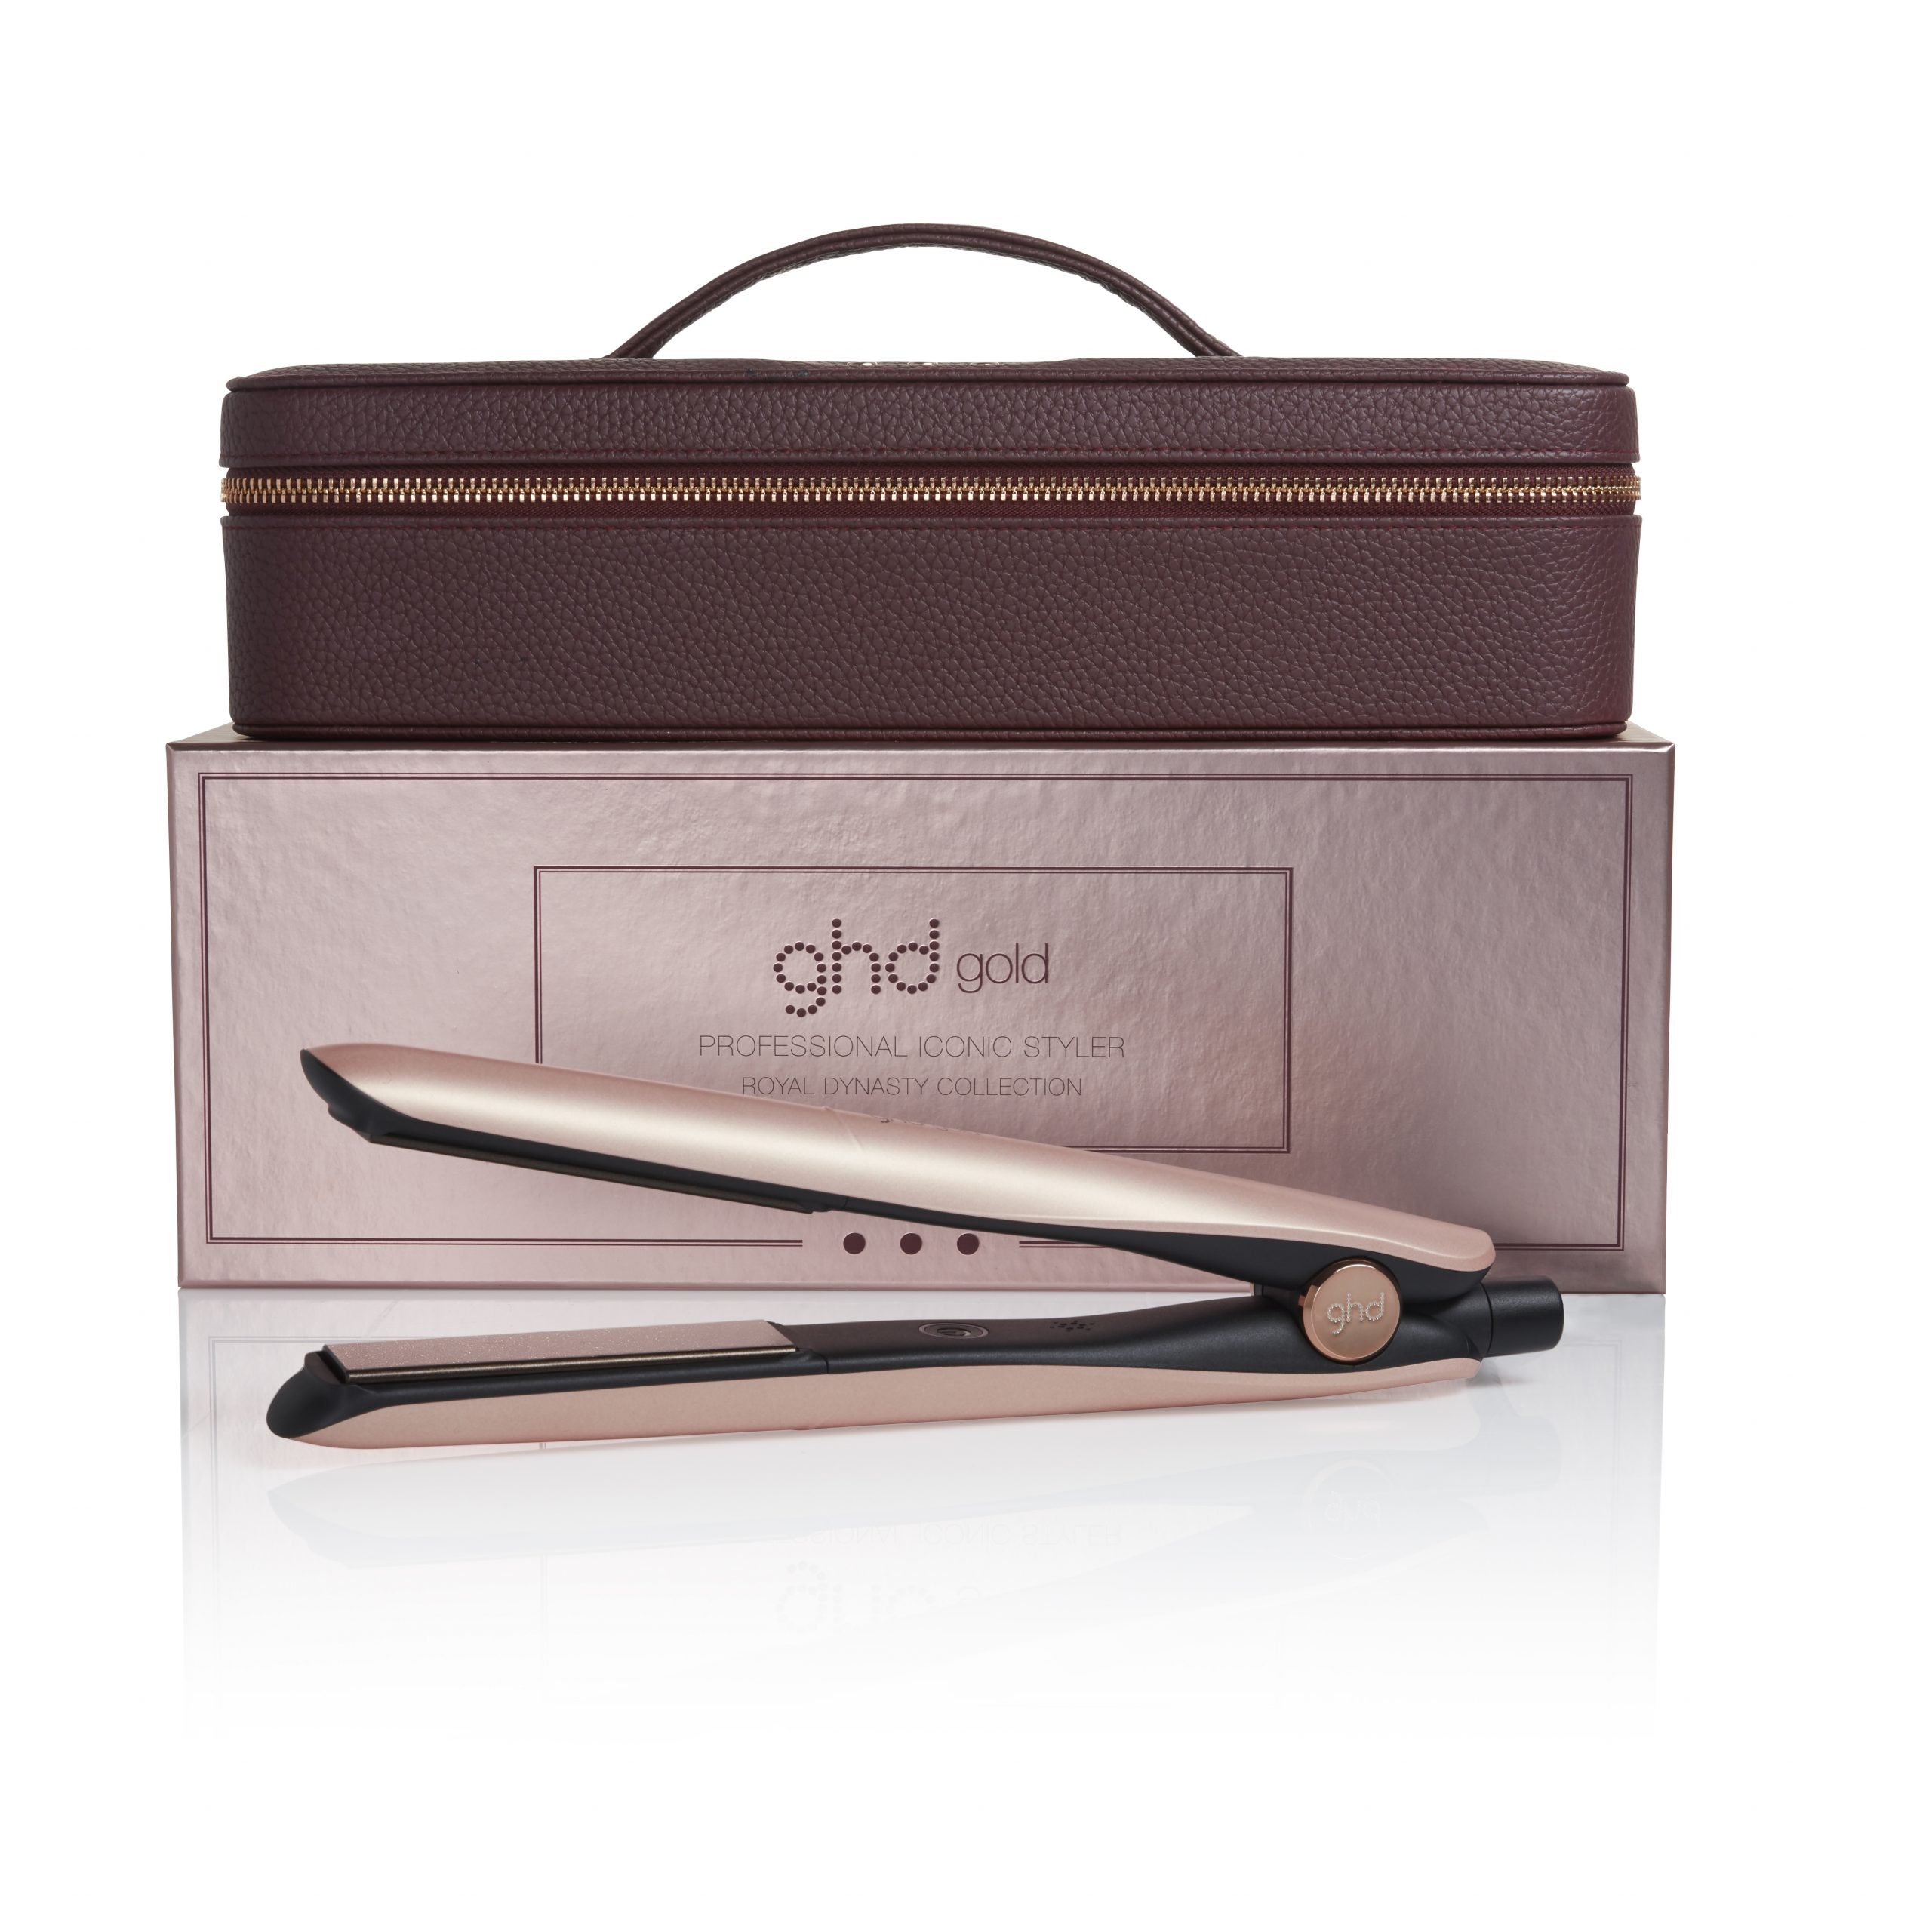 LIMITED EDITION ROSE GOLD Box Vanity case Gold scaled